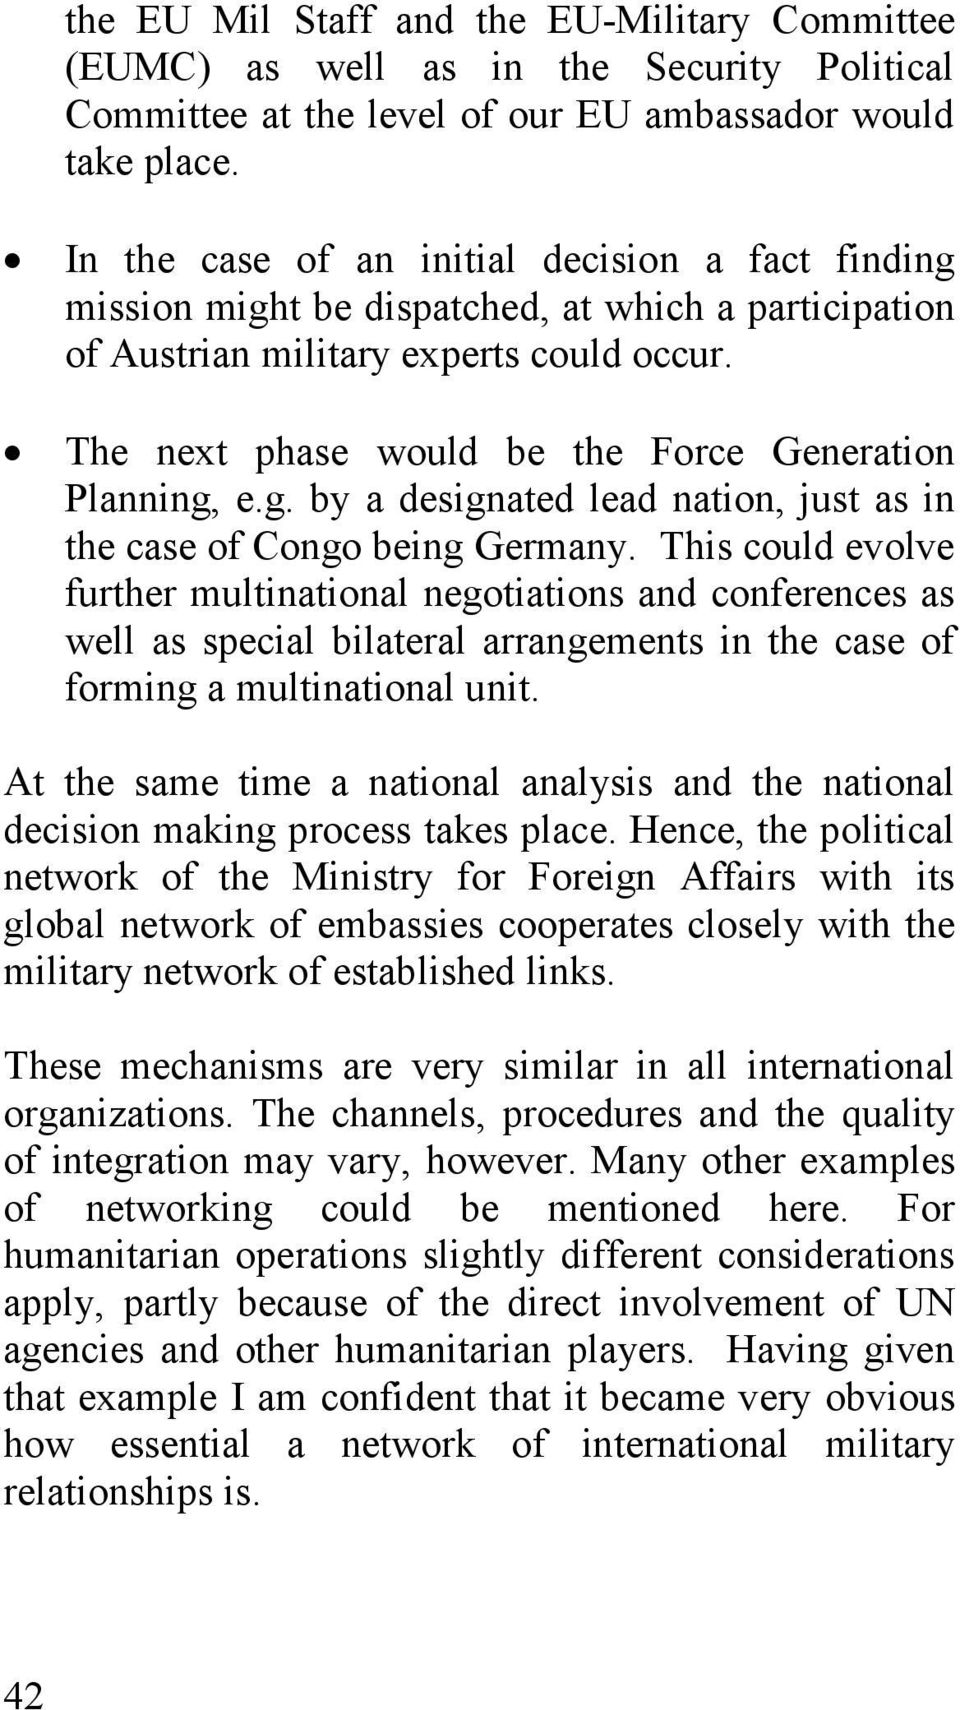 The next phase would be the Force Generation Planning, e.g. by a designated lead nation, just as in the case of Congo being Germany.